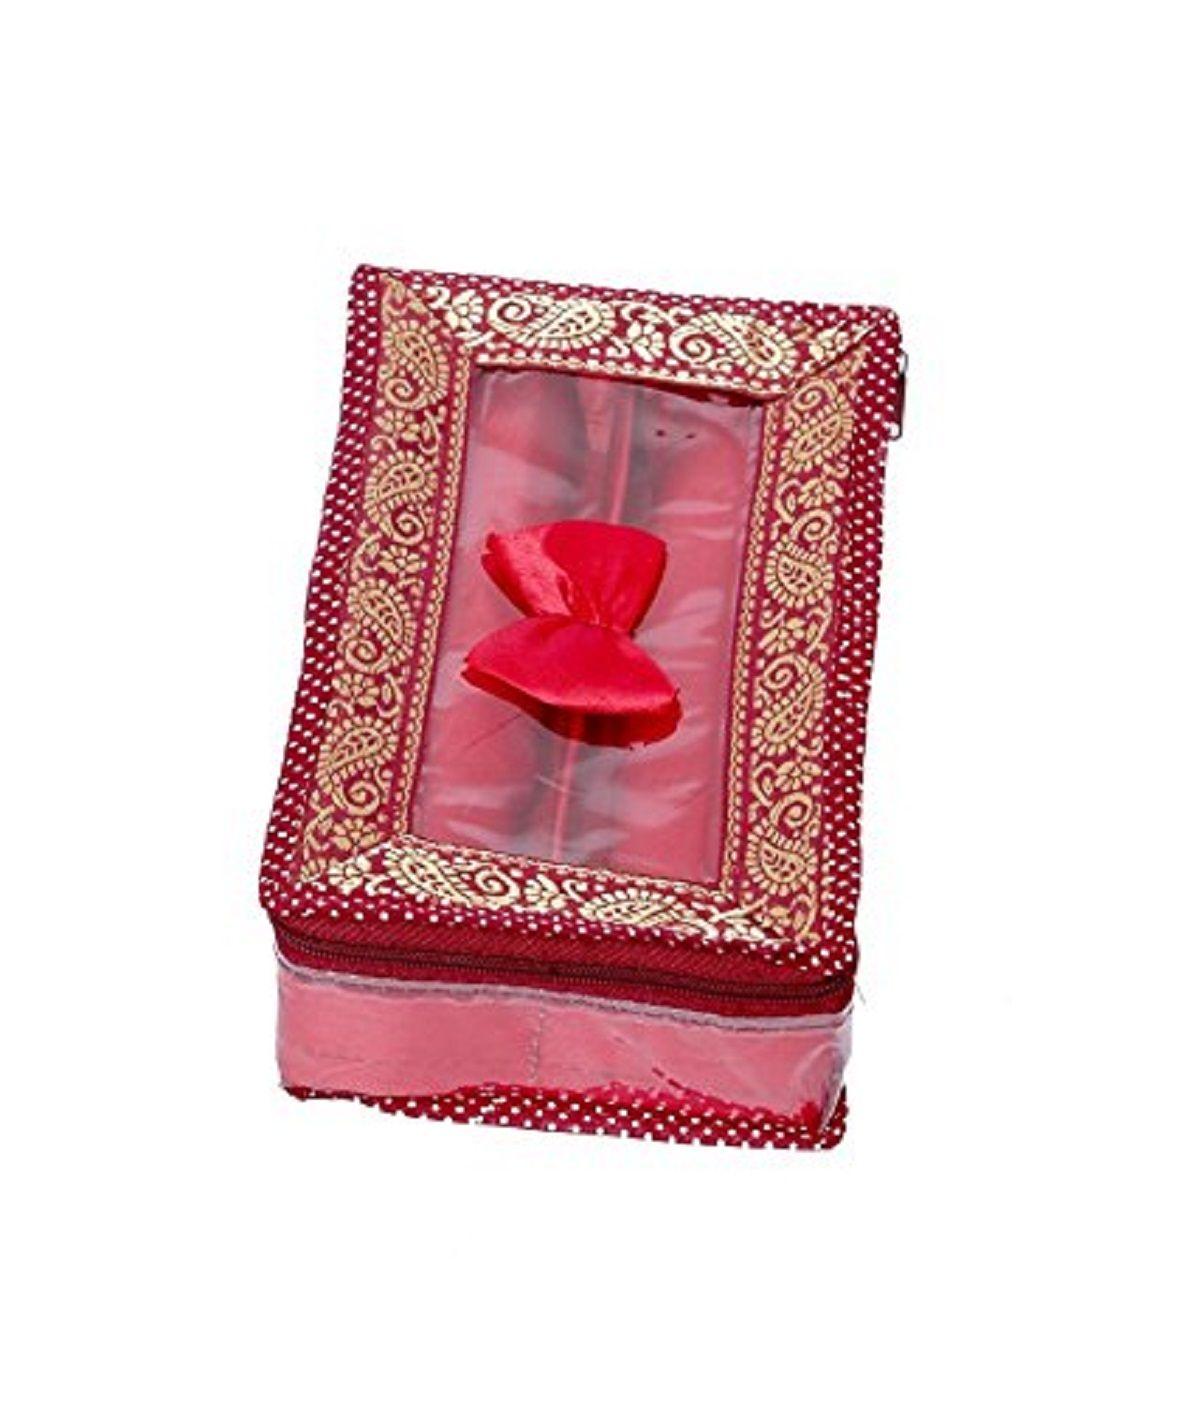 Kuber Industries™ 2 Rod Brocade Bangle box Set of 2 Pcs (9 cm x 17 cm x 28 cm)  (Code-COM018)